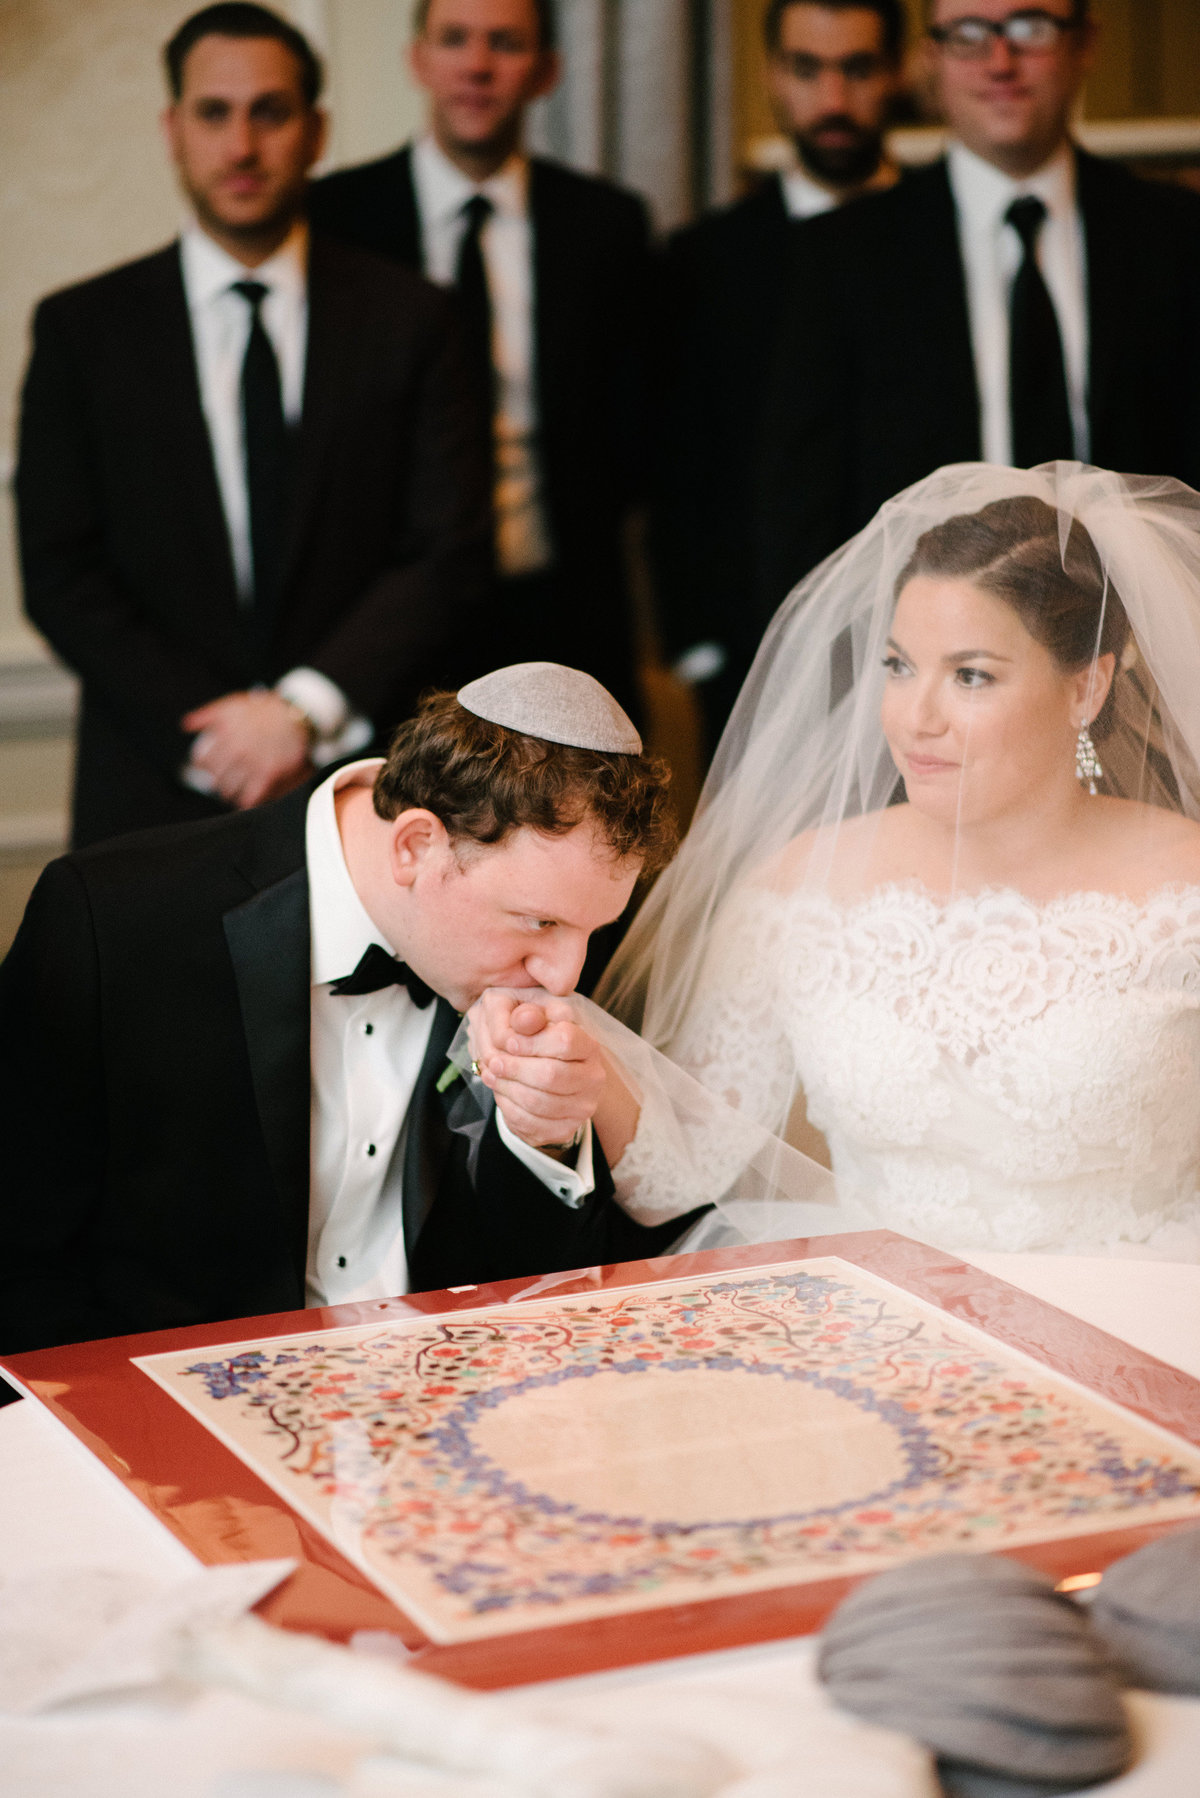 ketubah signing wedding photo